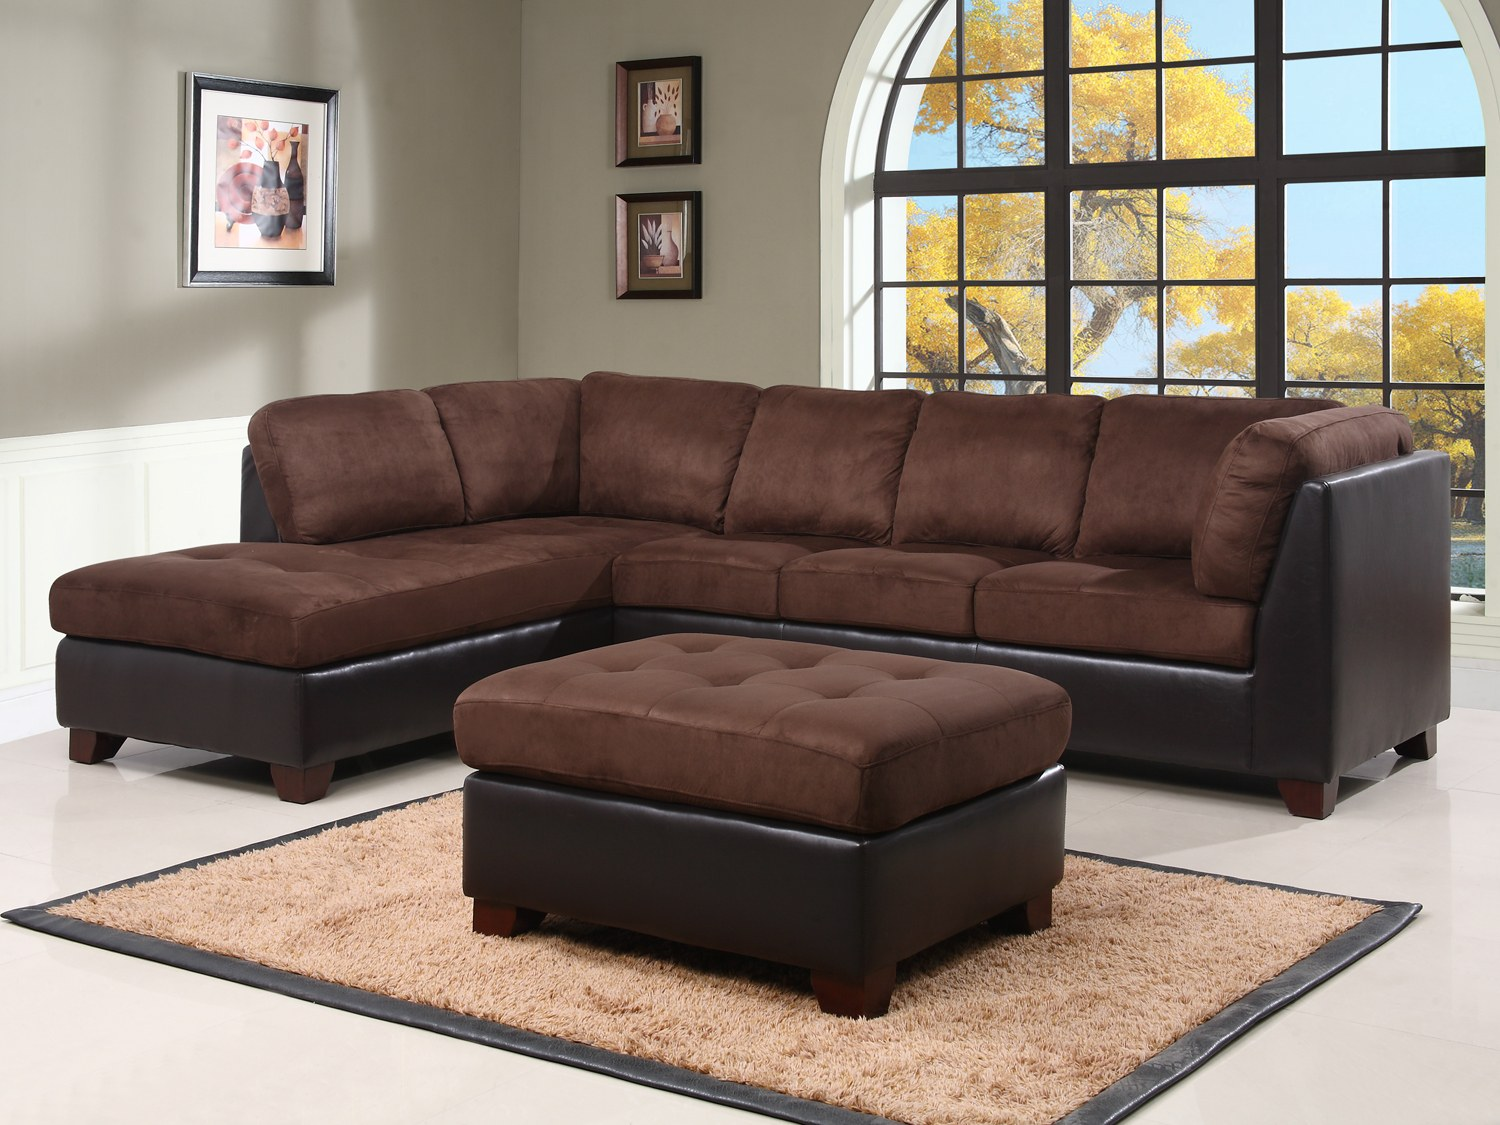 charlotte 2 pc sectional sofa set by abbyson living ci d107 brn